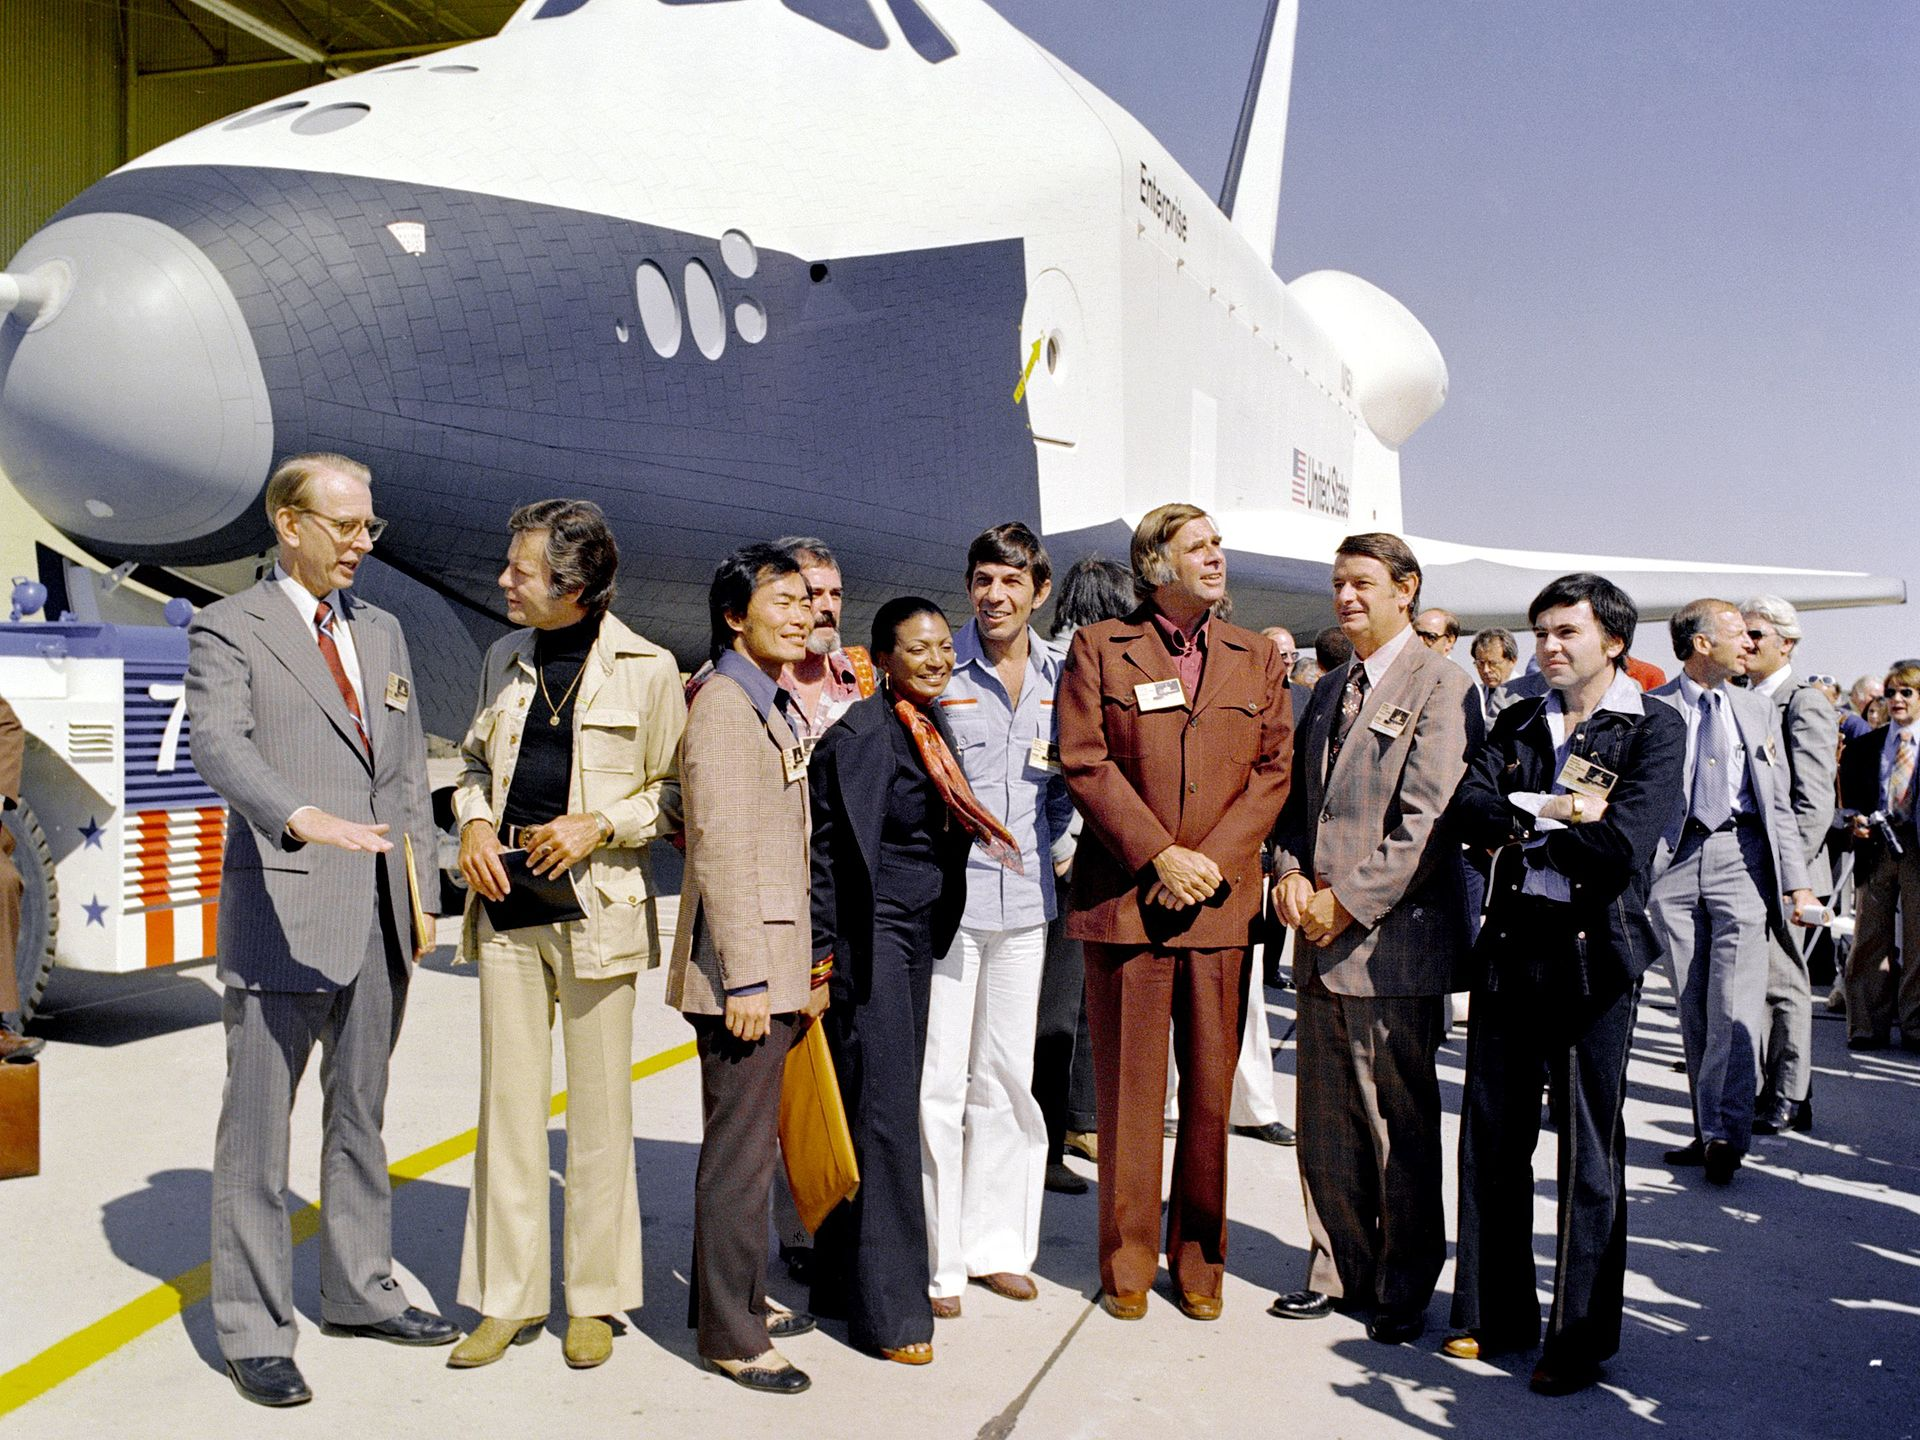 Foto: By NASA (Great Images in NASA The Shuttle Enterprise) [Public domain], via Wikimedia Commons